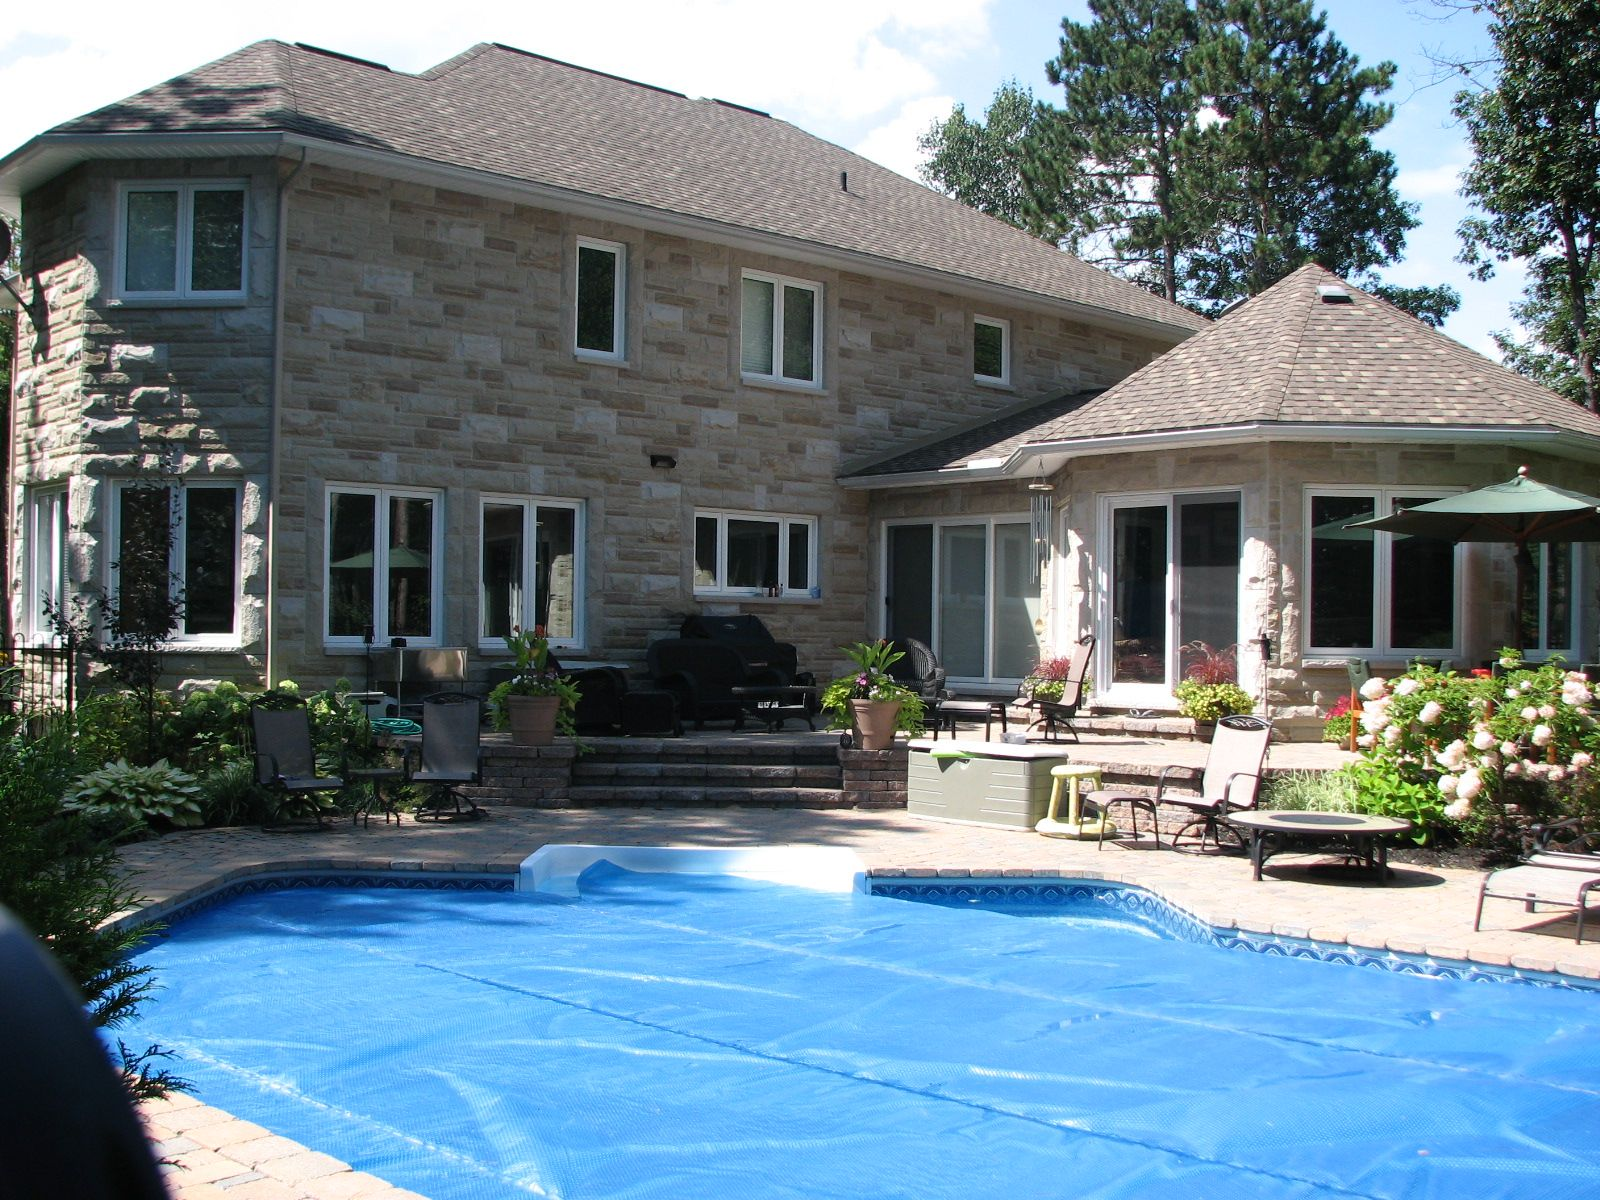 icf home designs%0A Awesome NUDURA house with a lovely pool and outdoor space   ICF